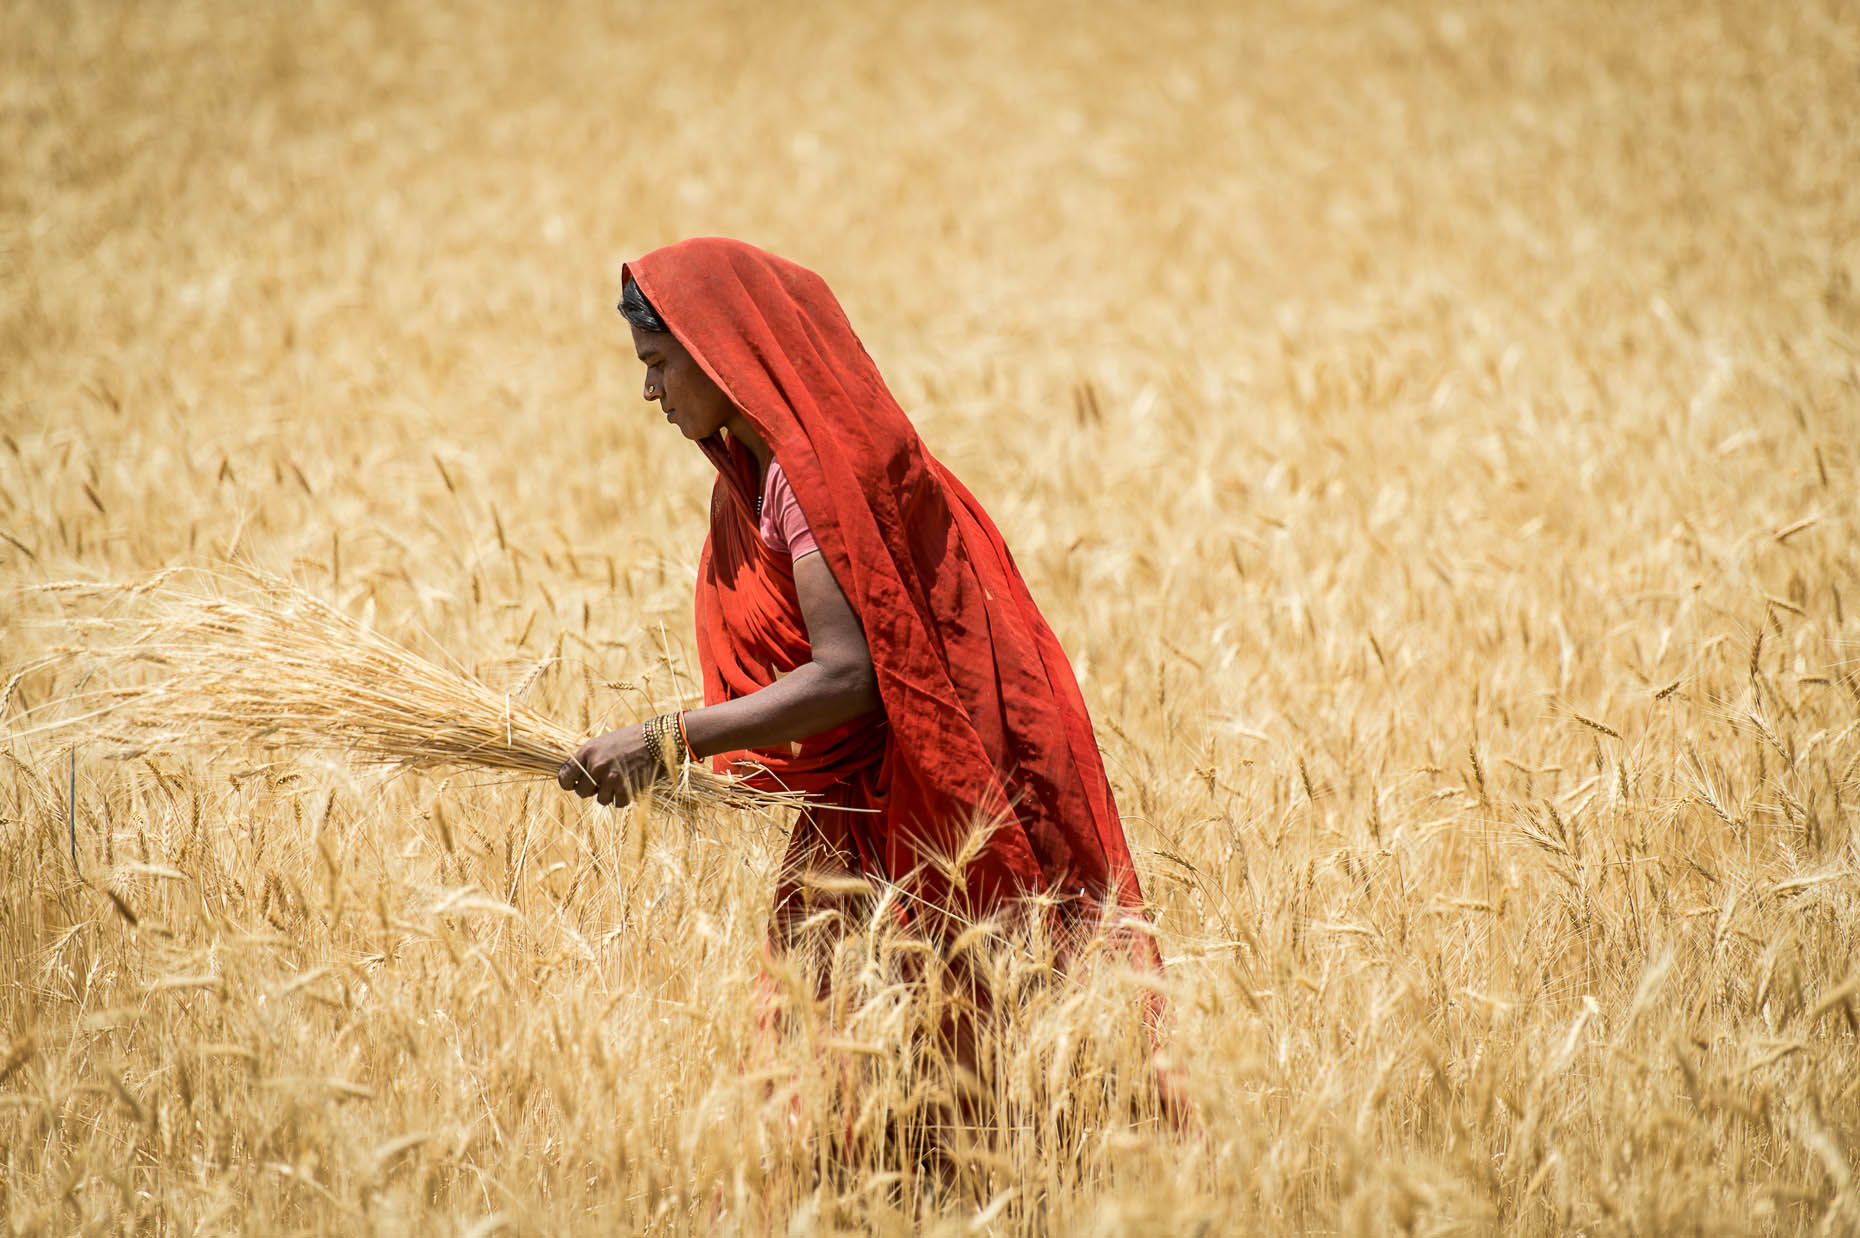 Lady-harvesting-wheat-India